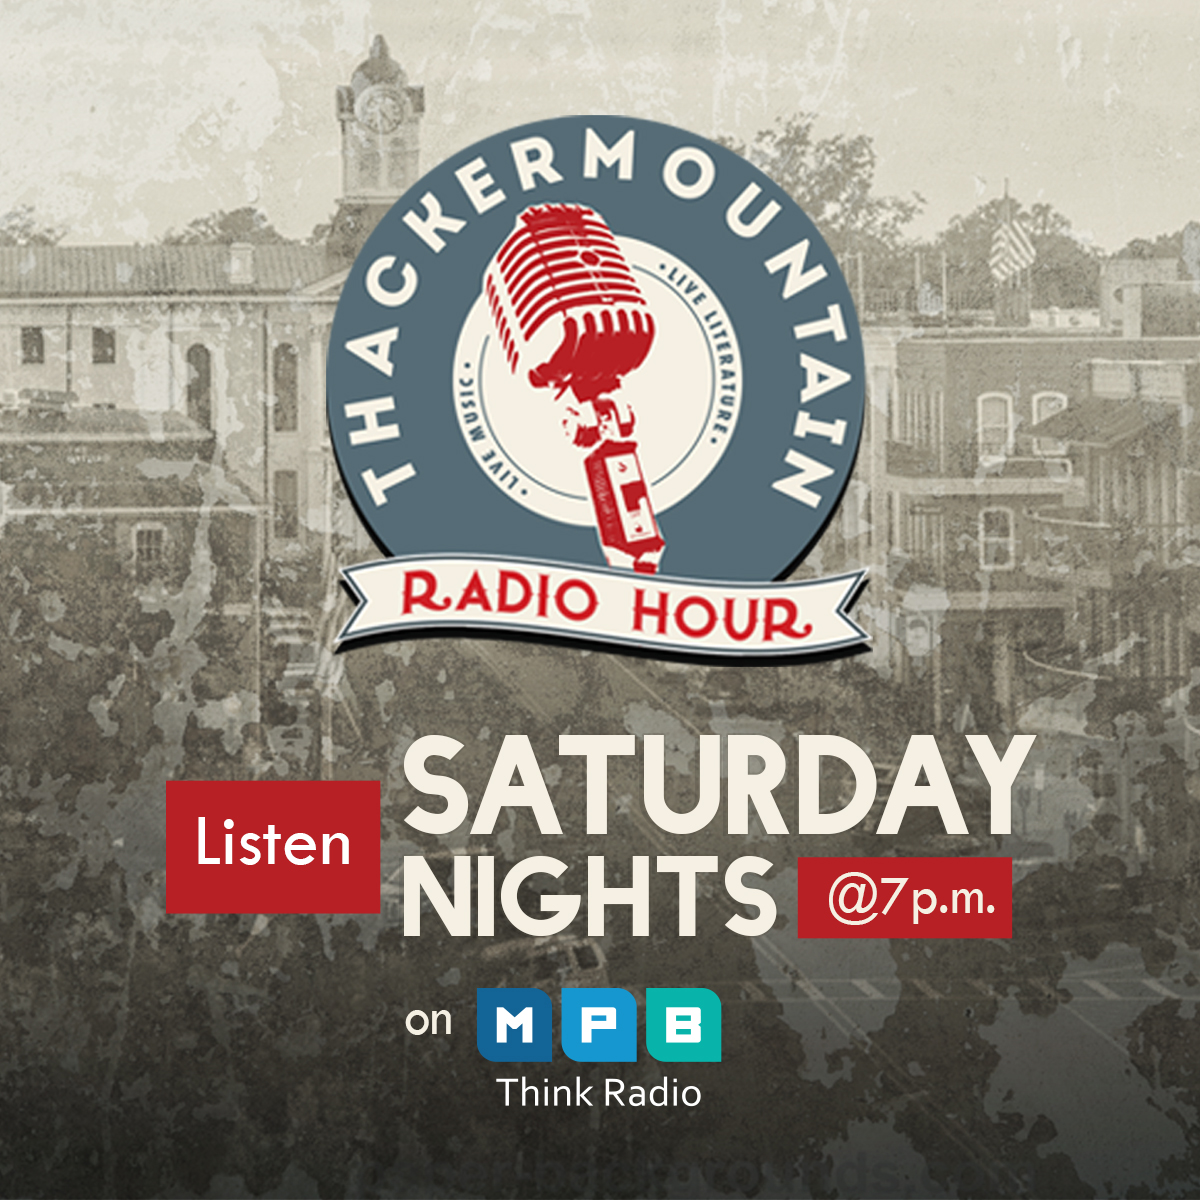 Listen to Thacker Mountain Radio Hour on Saturdays at 7 p.m. on MPB Think Radio